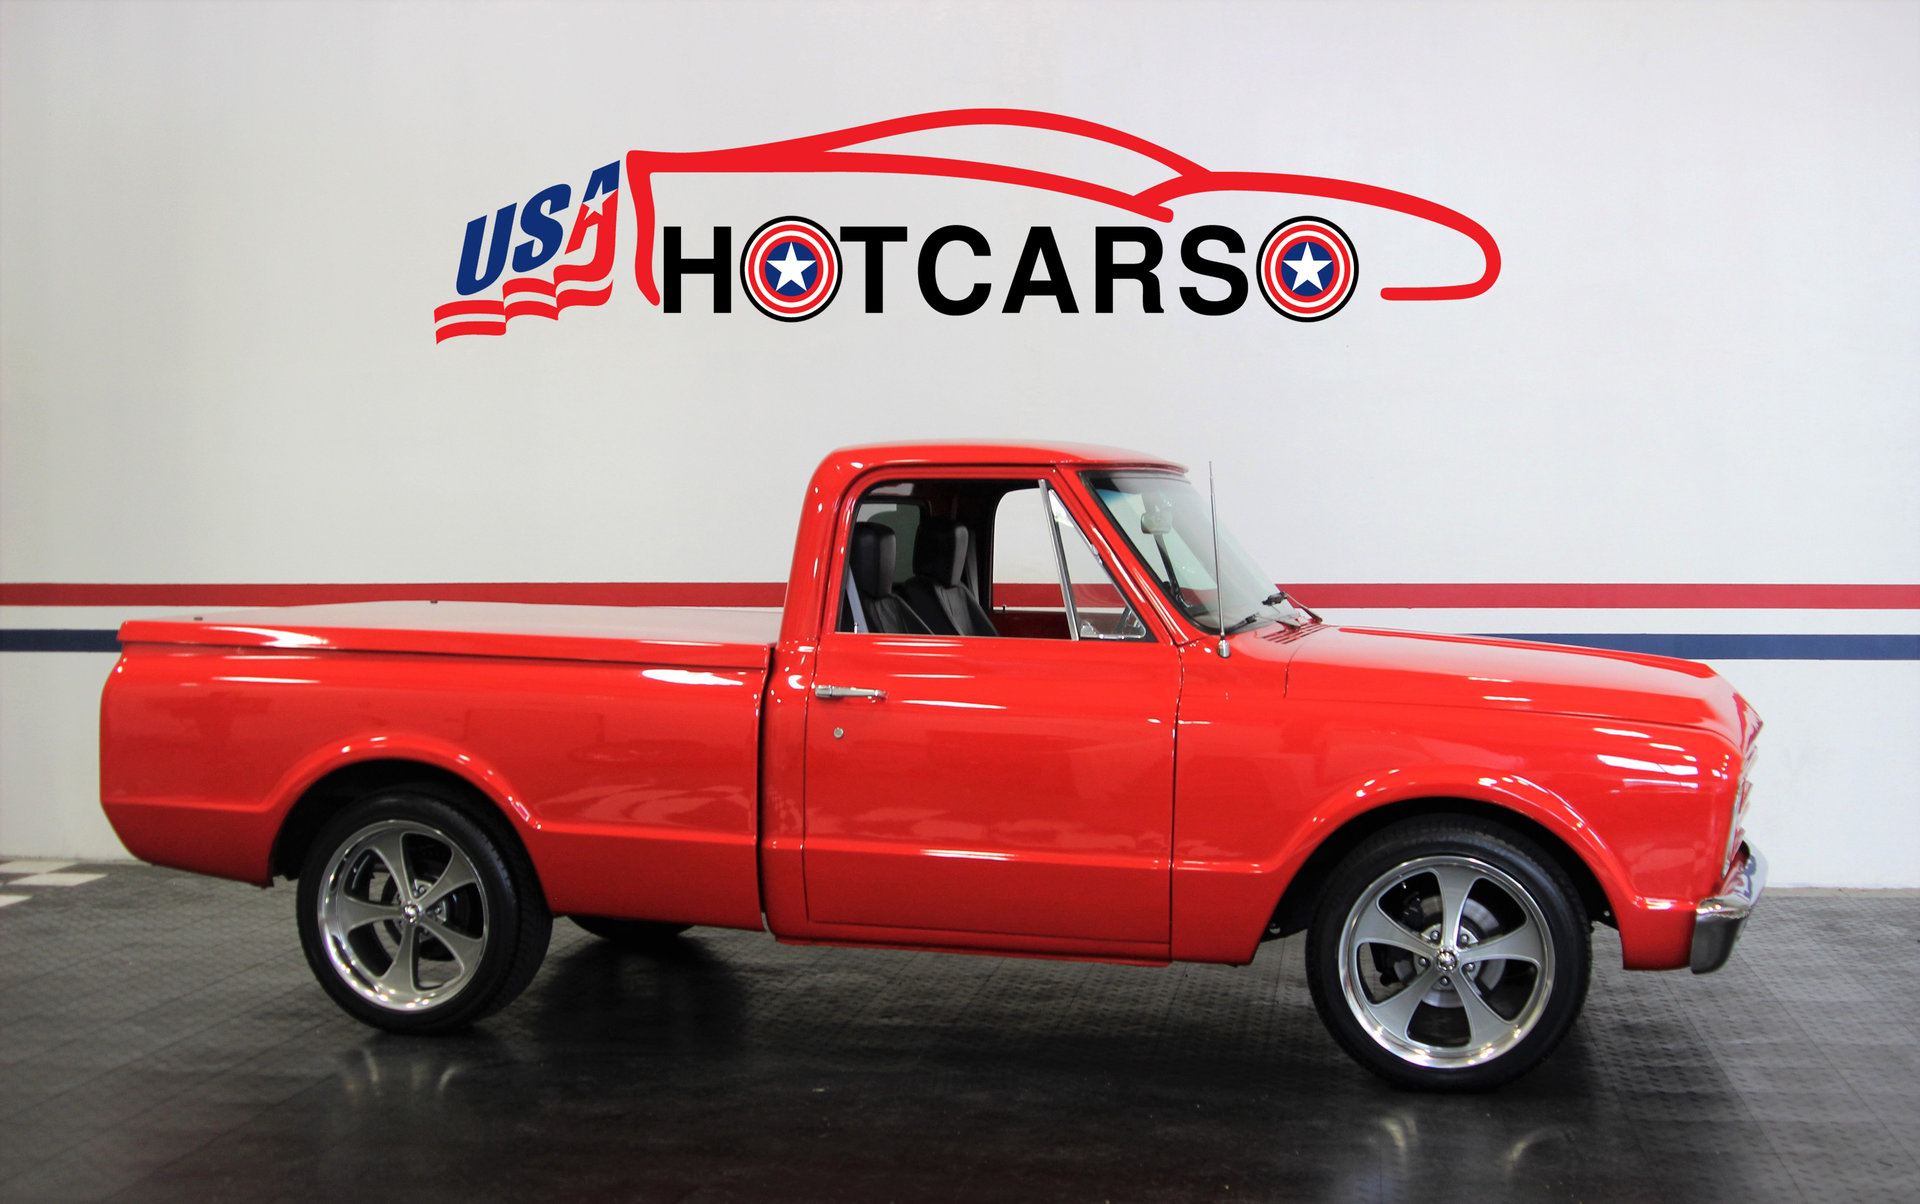 1967 Chevrolet C10 | Classic,Trucks,Vintage,Old Cars,Muscle Cars,USA ...